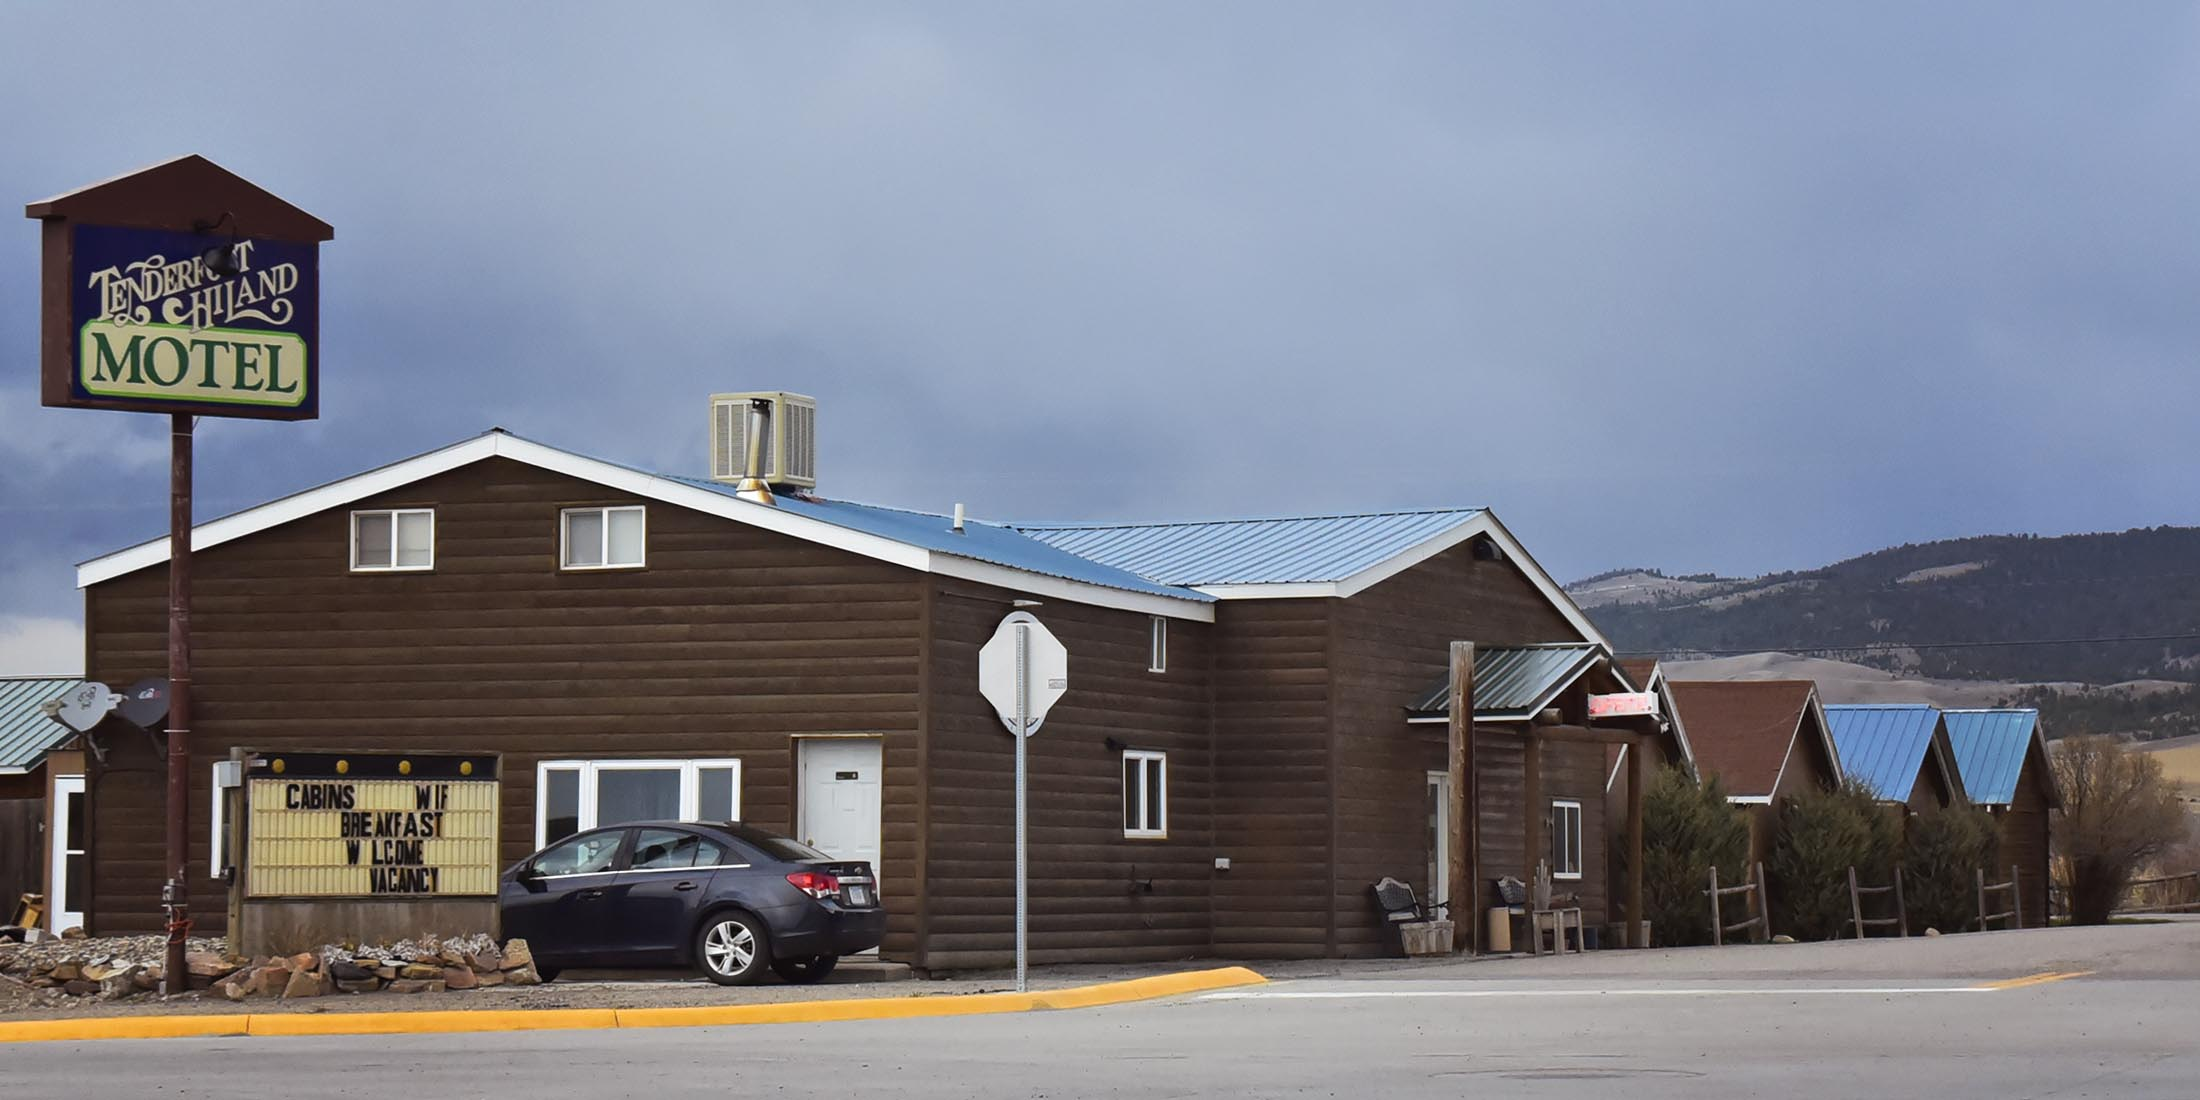 The Tenderfoot Hotel and Cabins in White Sulphur Springs on Highway 89 in Meagher County.